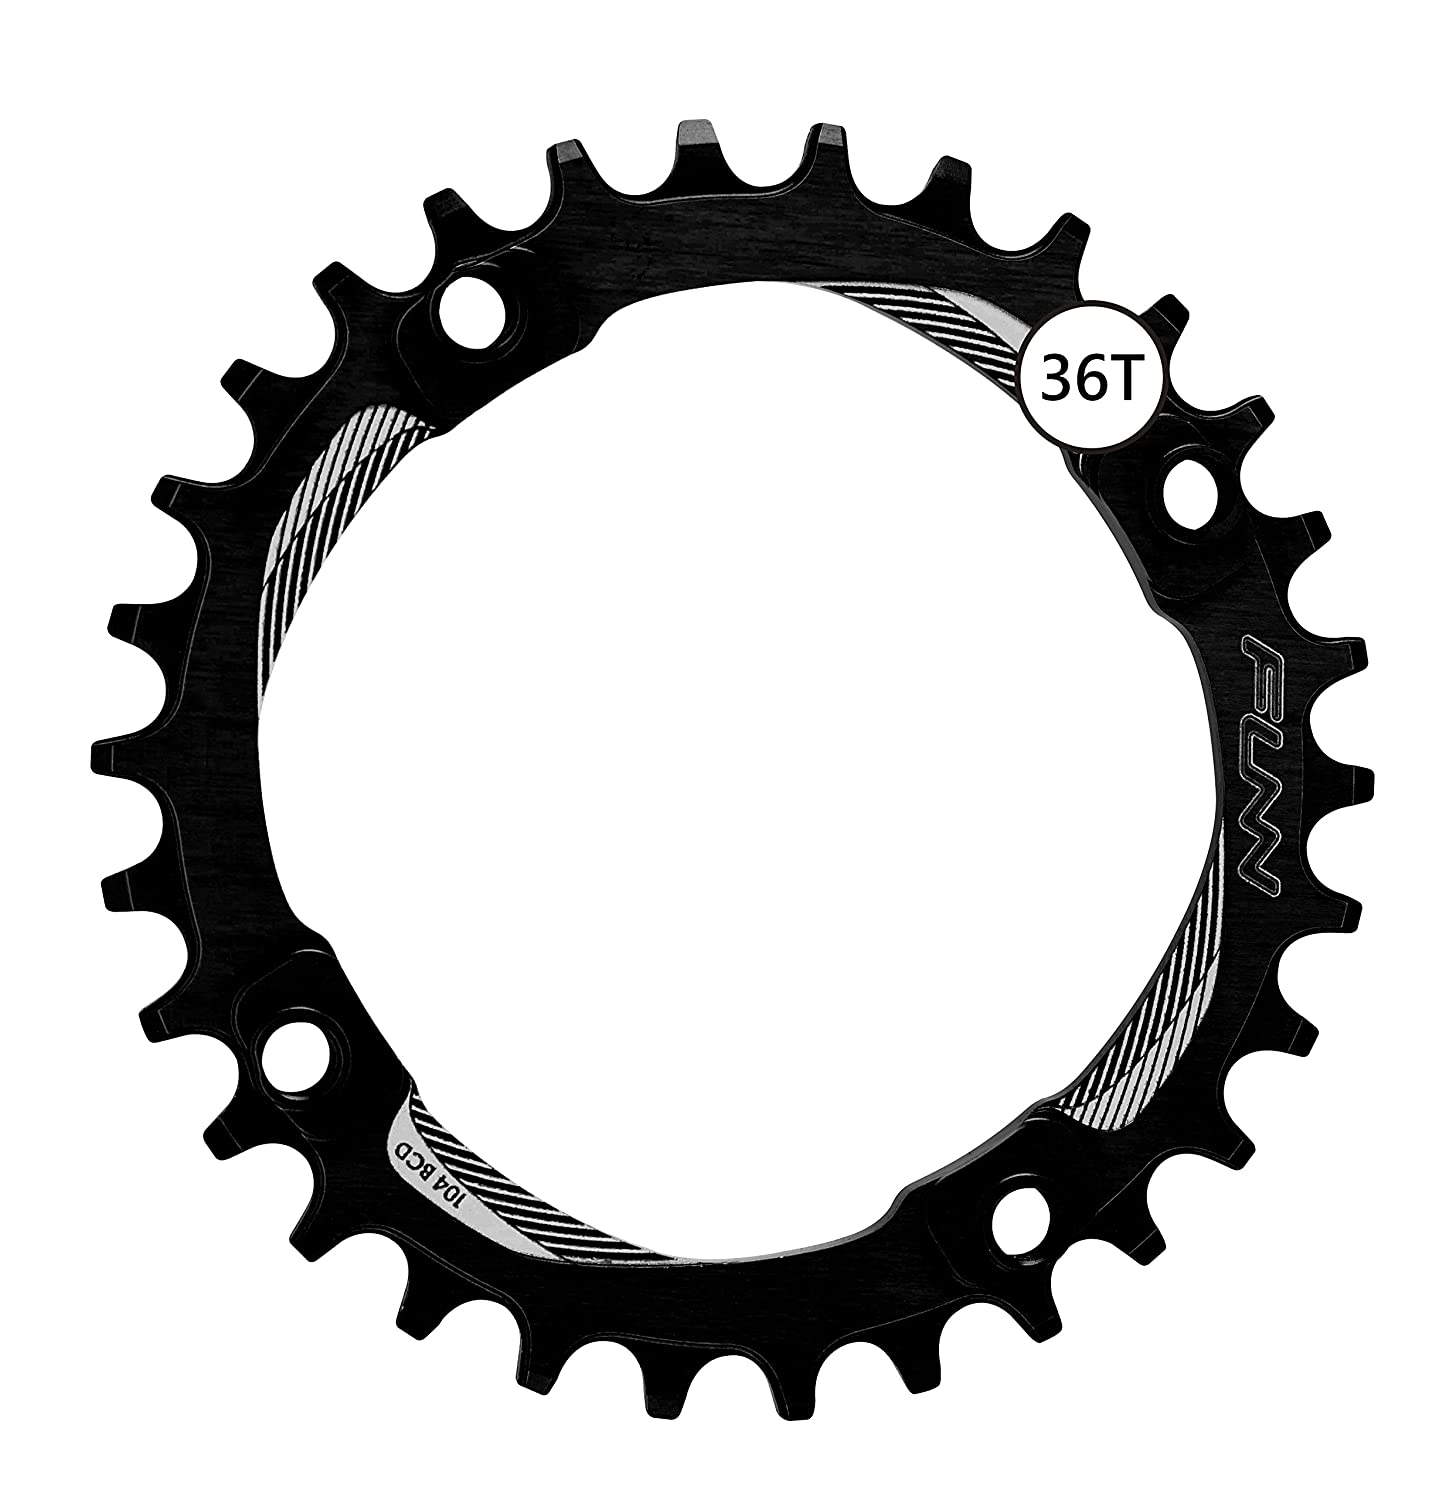 FunnソロNarrow Wide Chainring 36t B076P6VPGYブラック